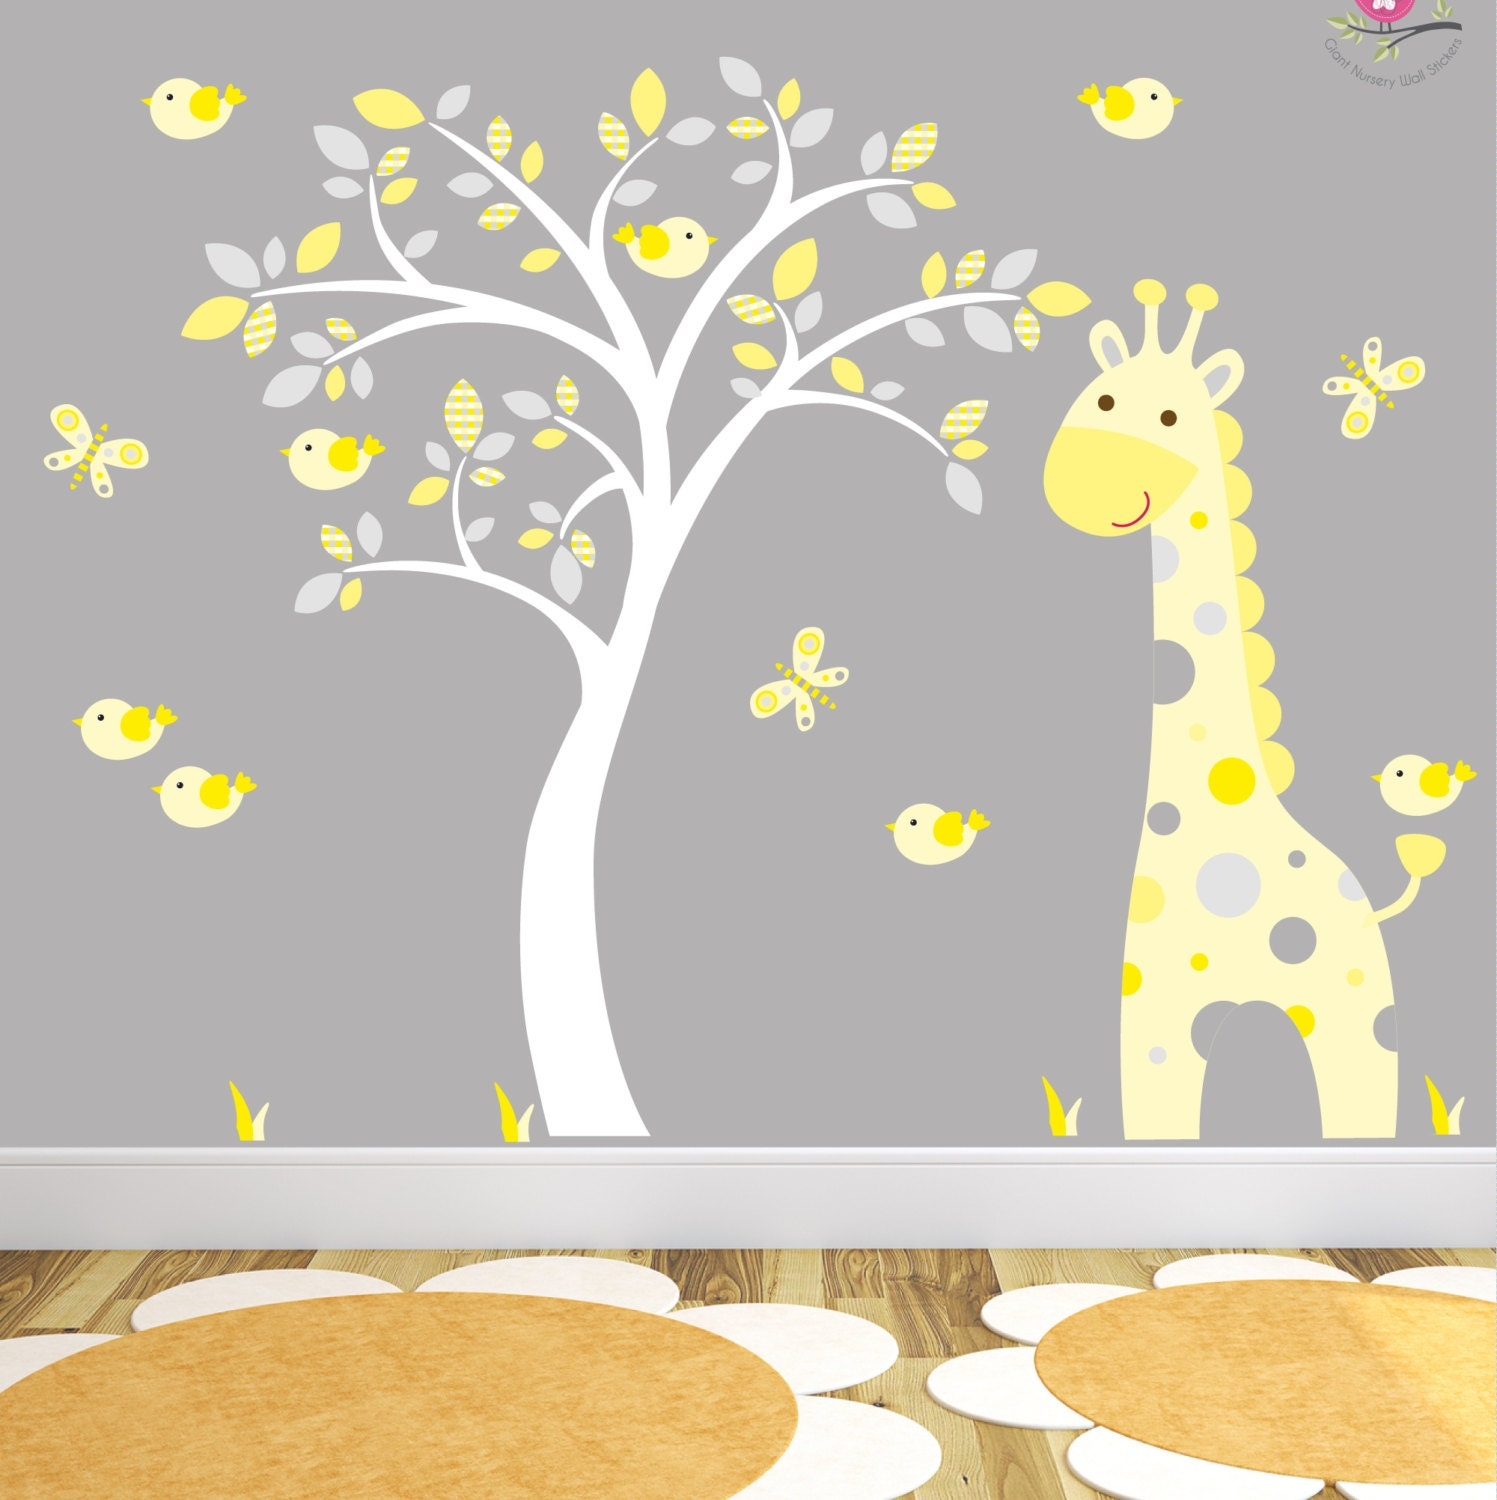 Giraffe Decal Yellow and Grey Jungle Nursery Birds and Butterlfies. Gender Neutral Wall Stickers Baby Room Decor White Tree Mural